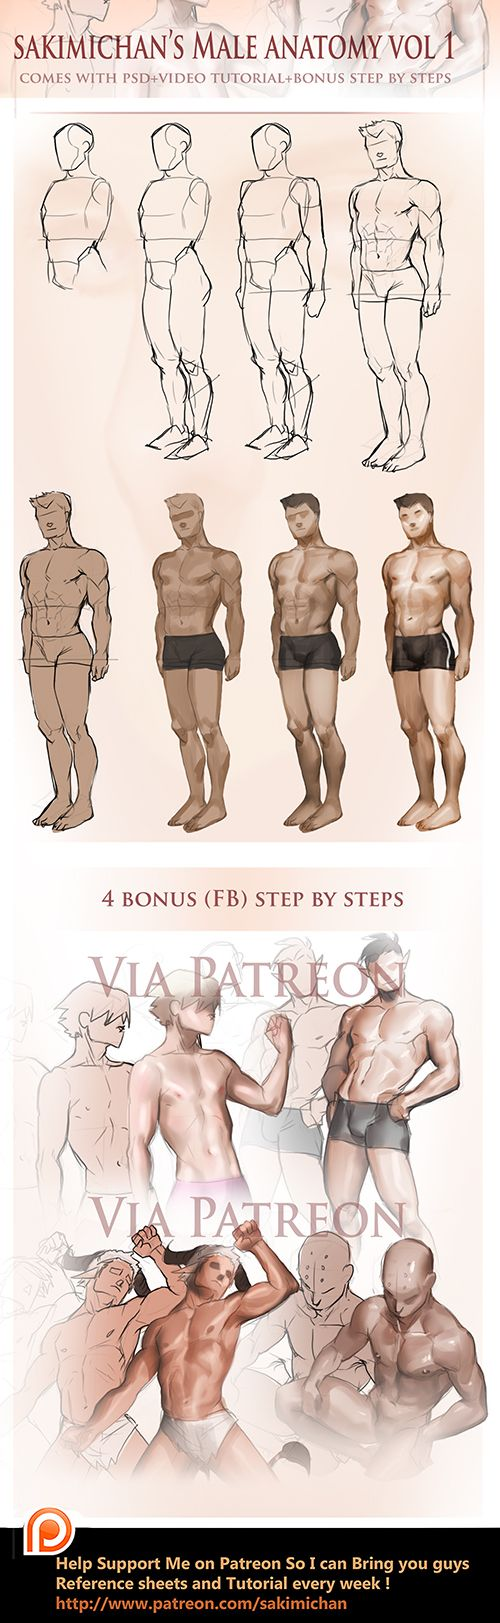 Male anatomy tutorial